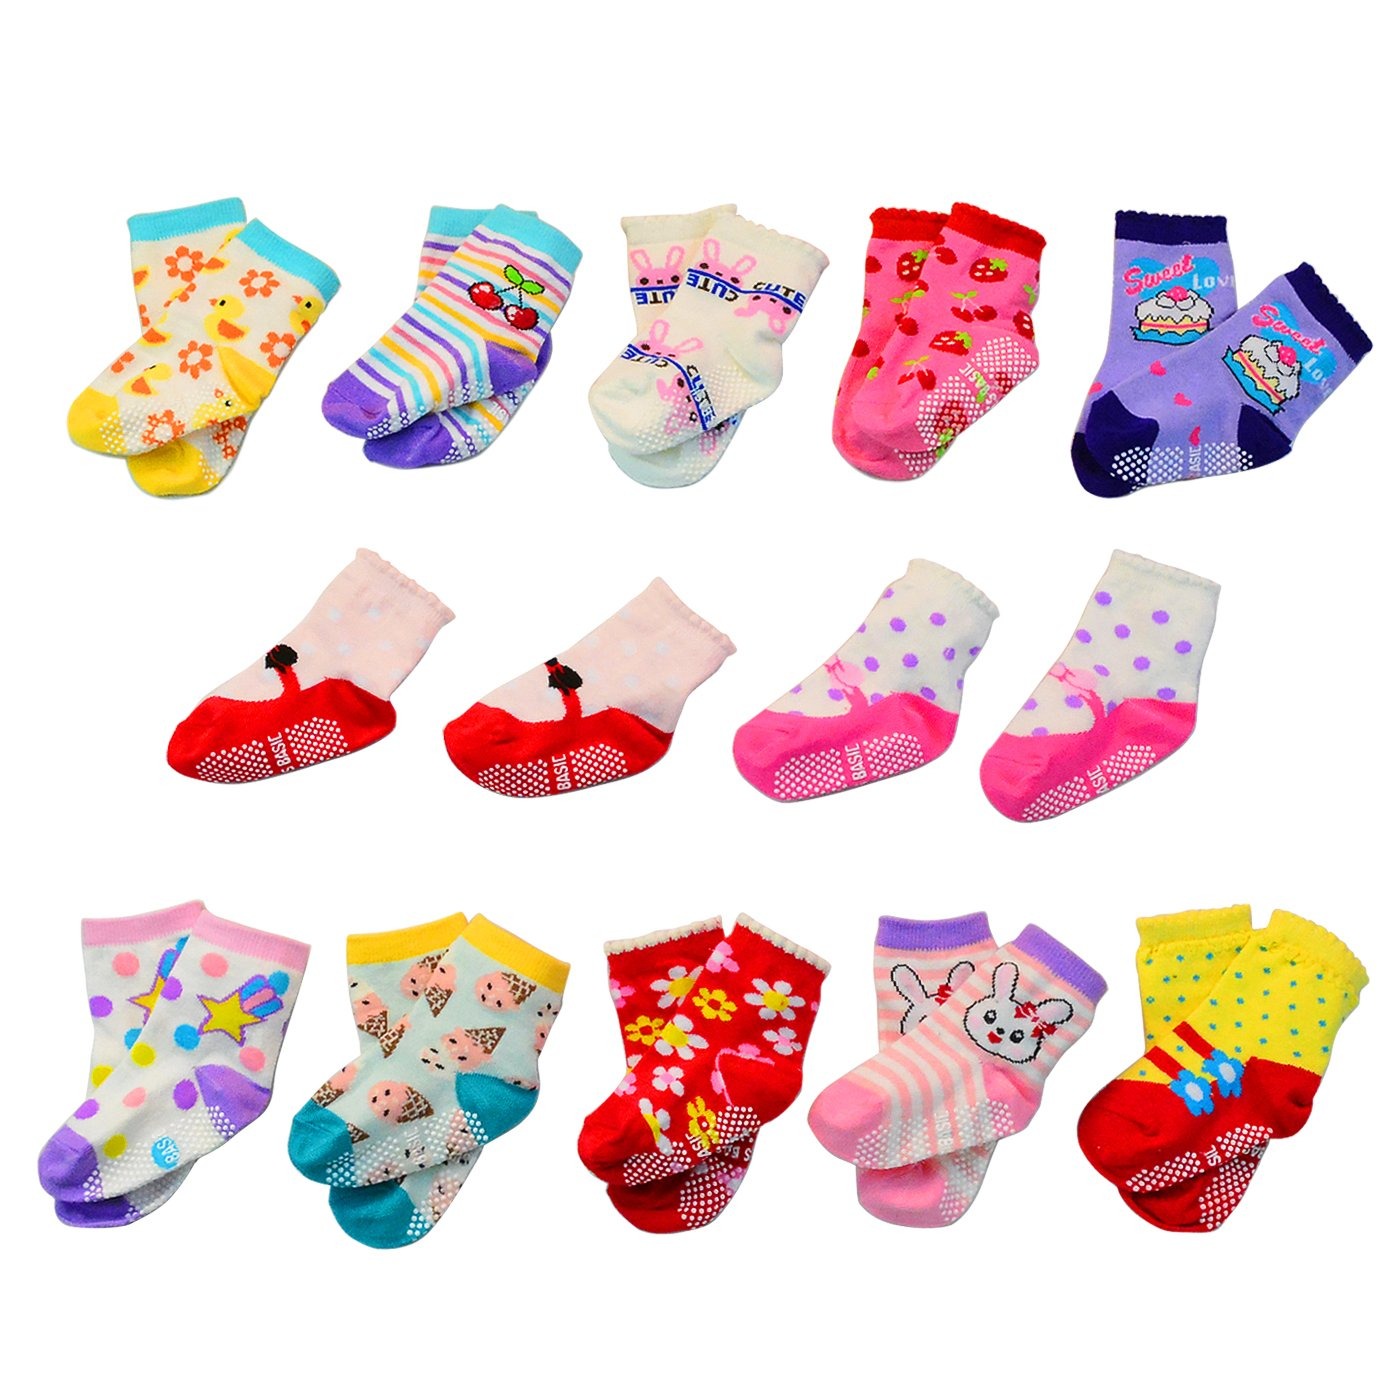 Lystaii 12 Pairs Anti-slip Soft Cotton Baby Kid Socks for 1-3 /12-36 Months Years Baby 3.5''-4.7'' Cute Cartoon Boys Girls Toddler Socks Random Color Non-Skid Knit Infants Socks Lyt606